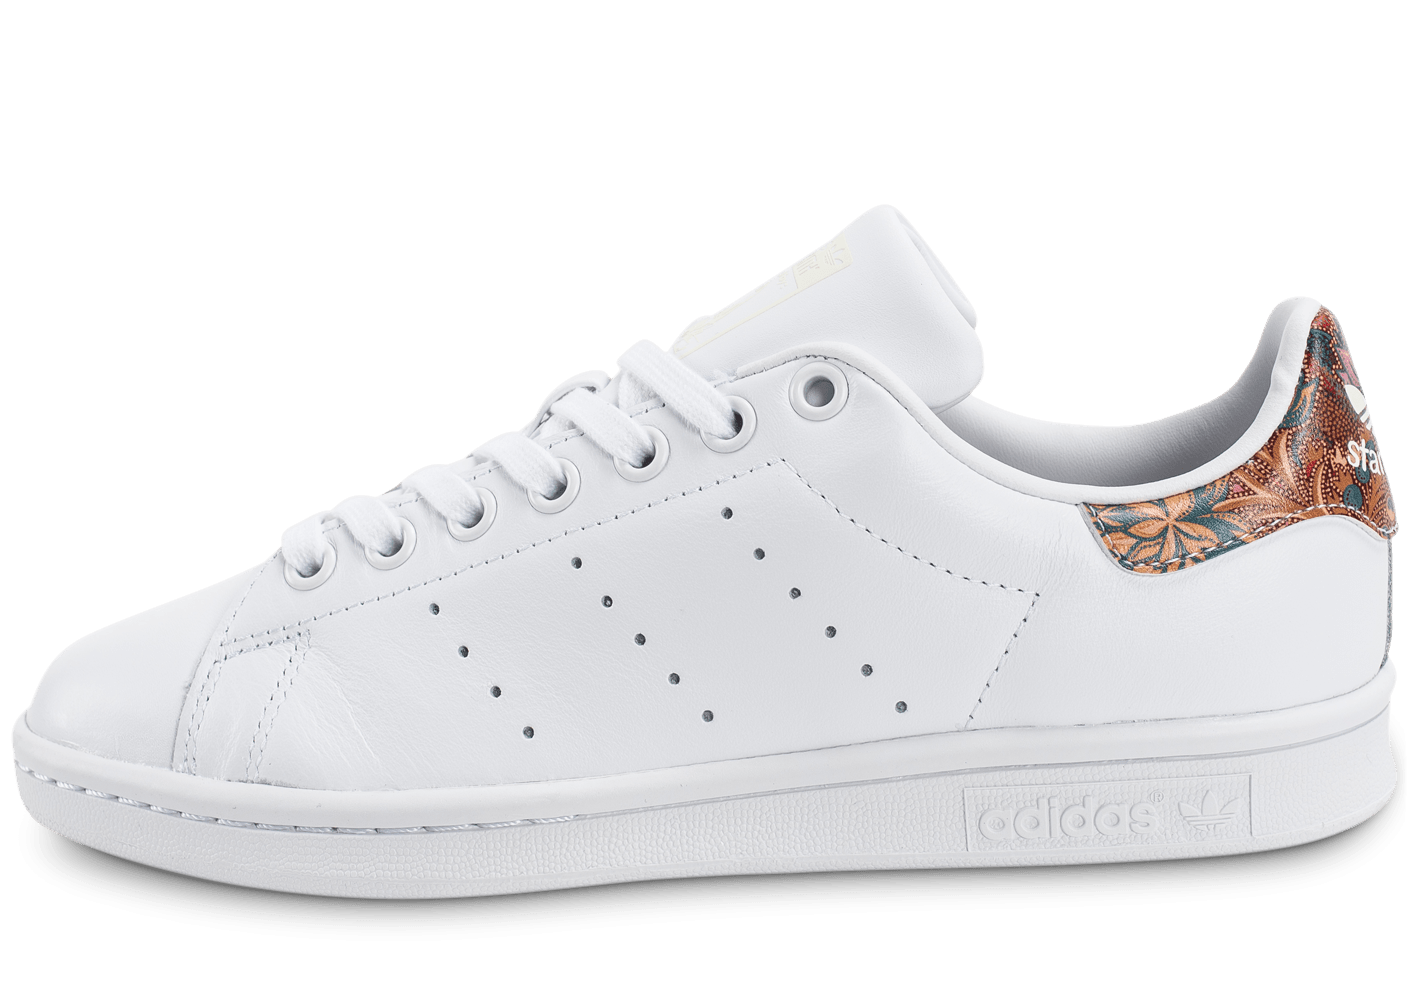 adidas Stan Smith The Farm W Bali blanche - Chaussures adidas - Chausport